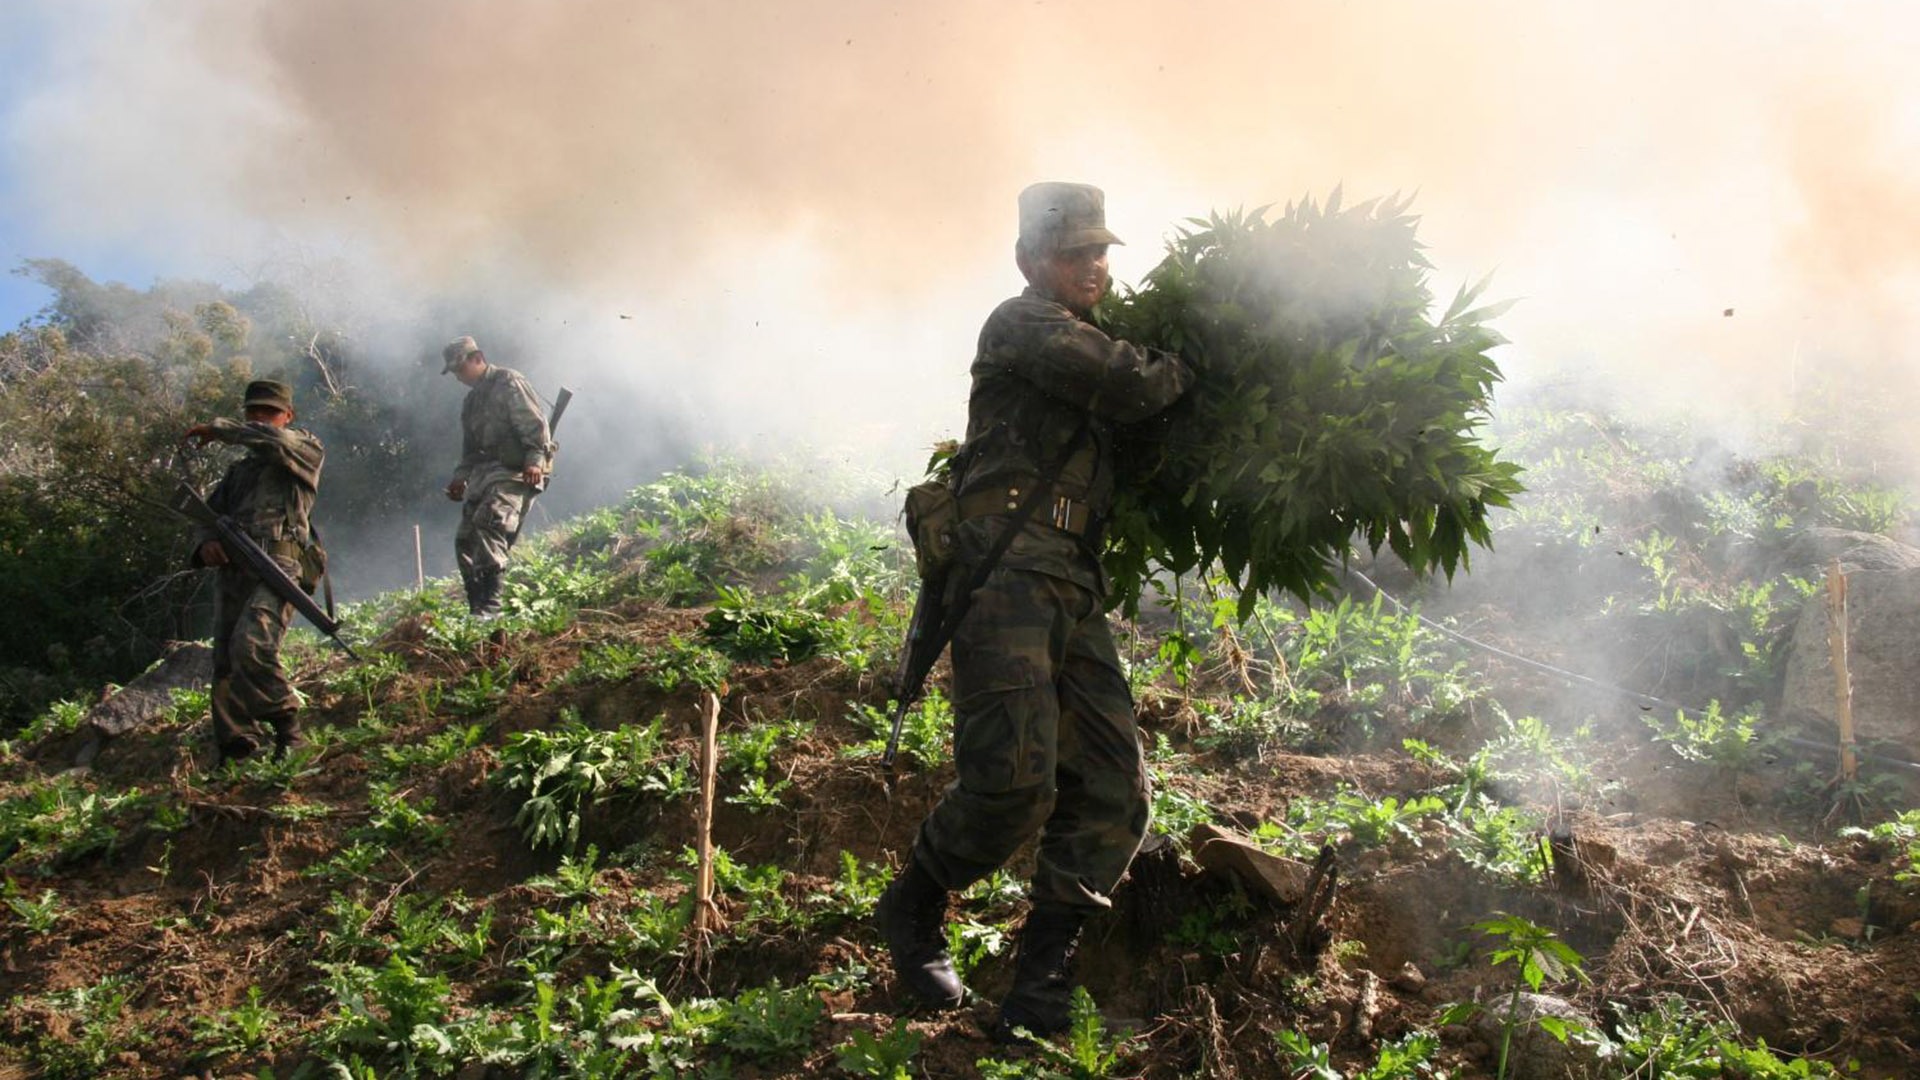 Mexico Mexican soldiers marijuana hero